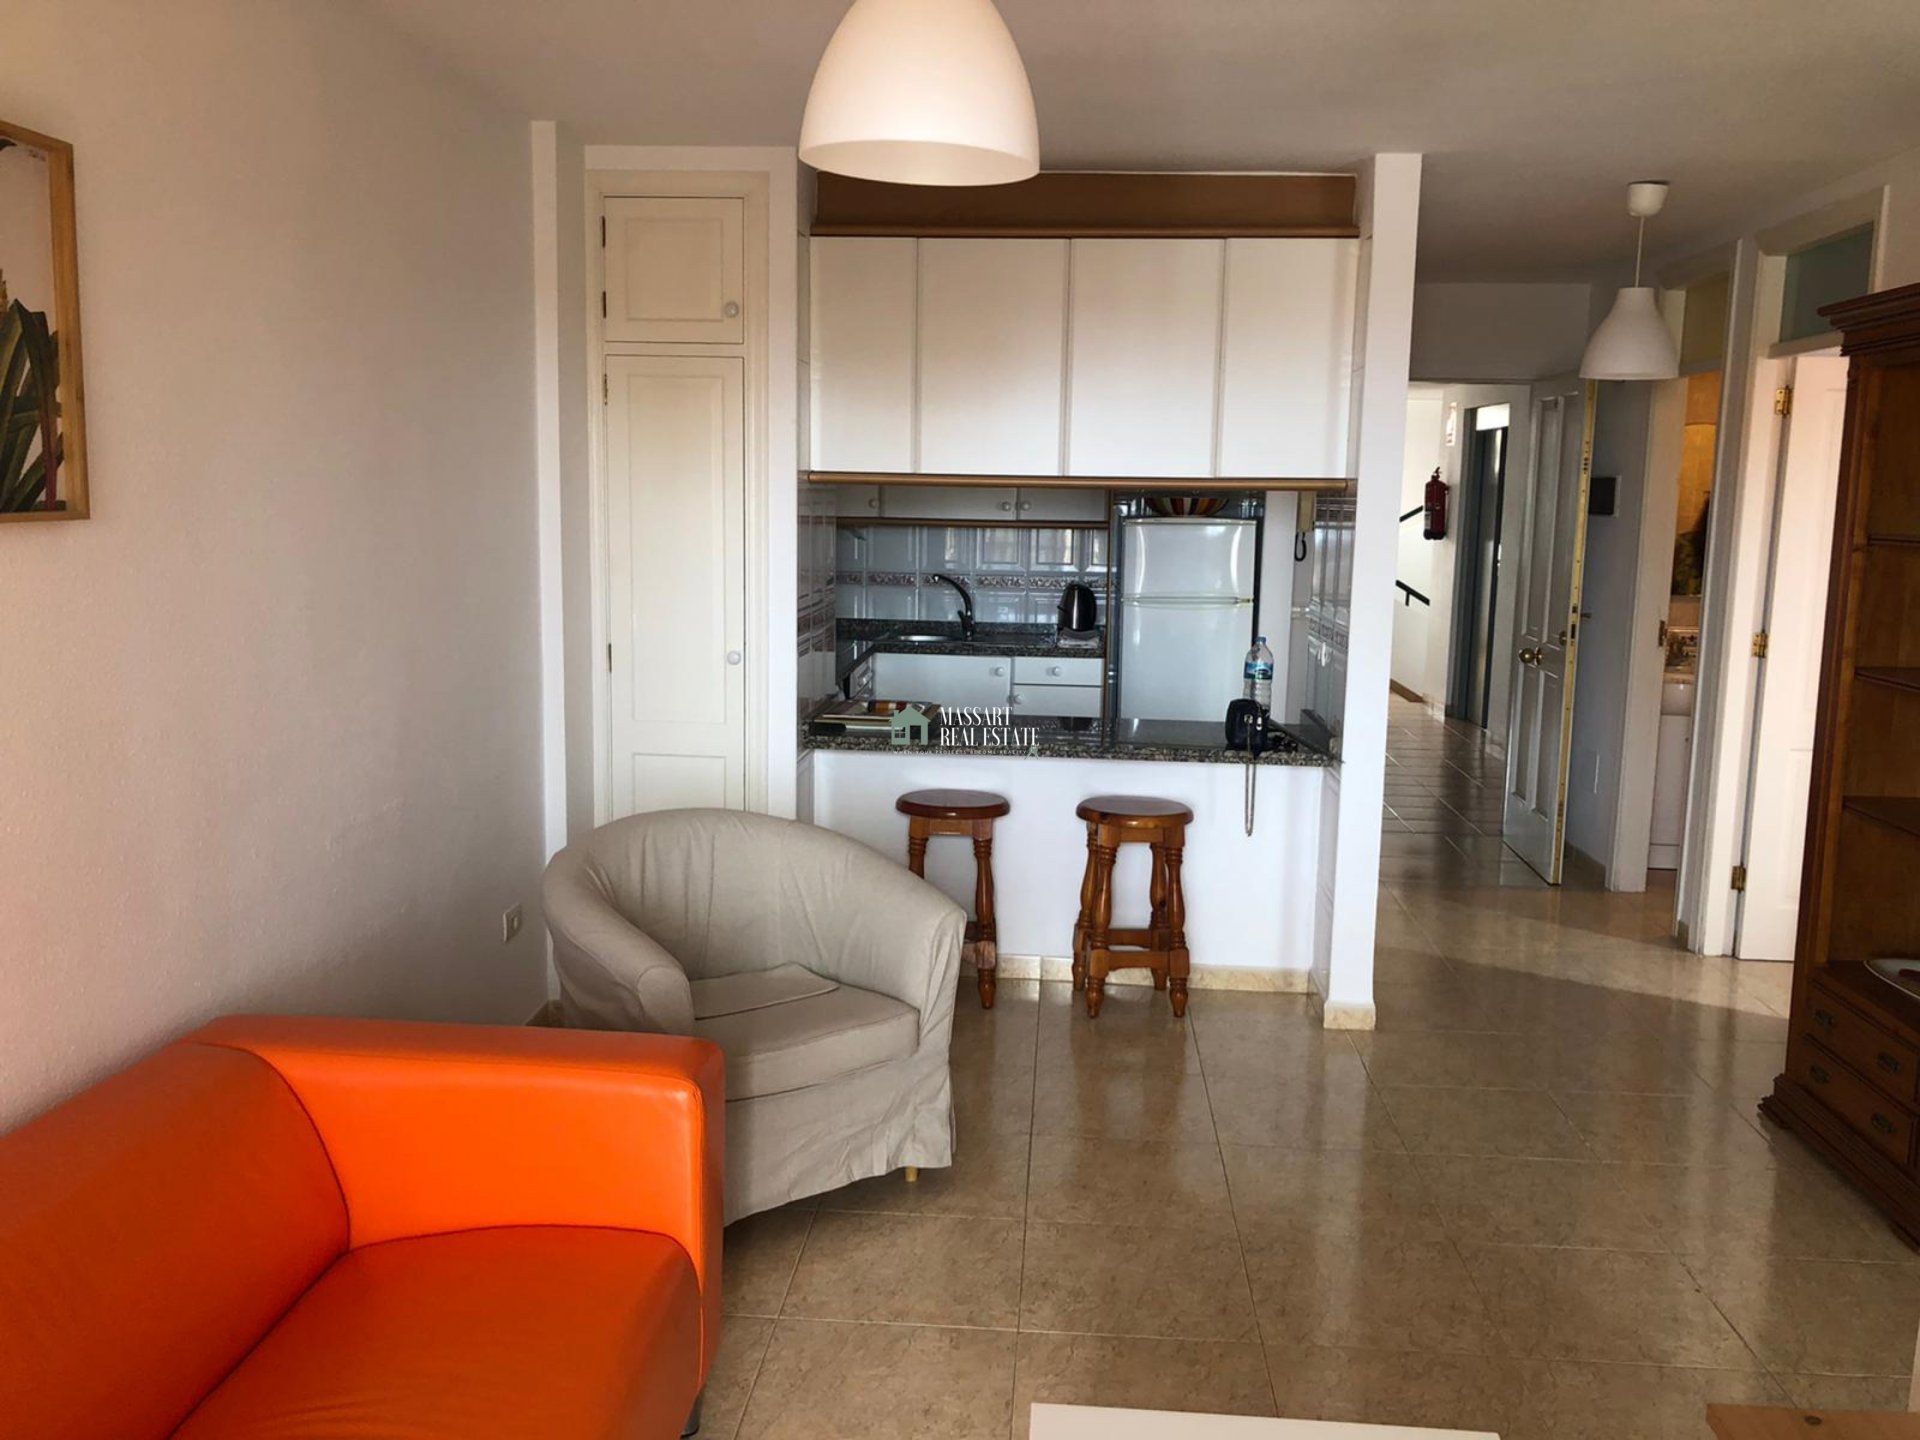 Cozy apartment for rent in Callao Salvaje, in the residential complex Sunset View.